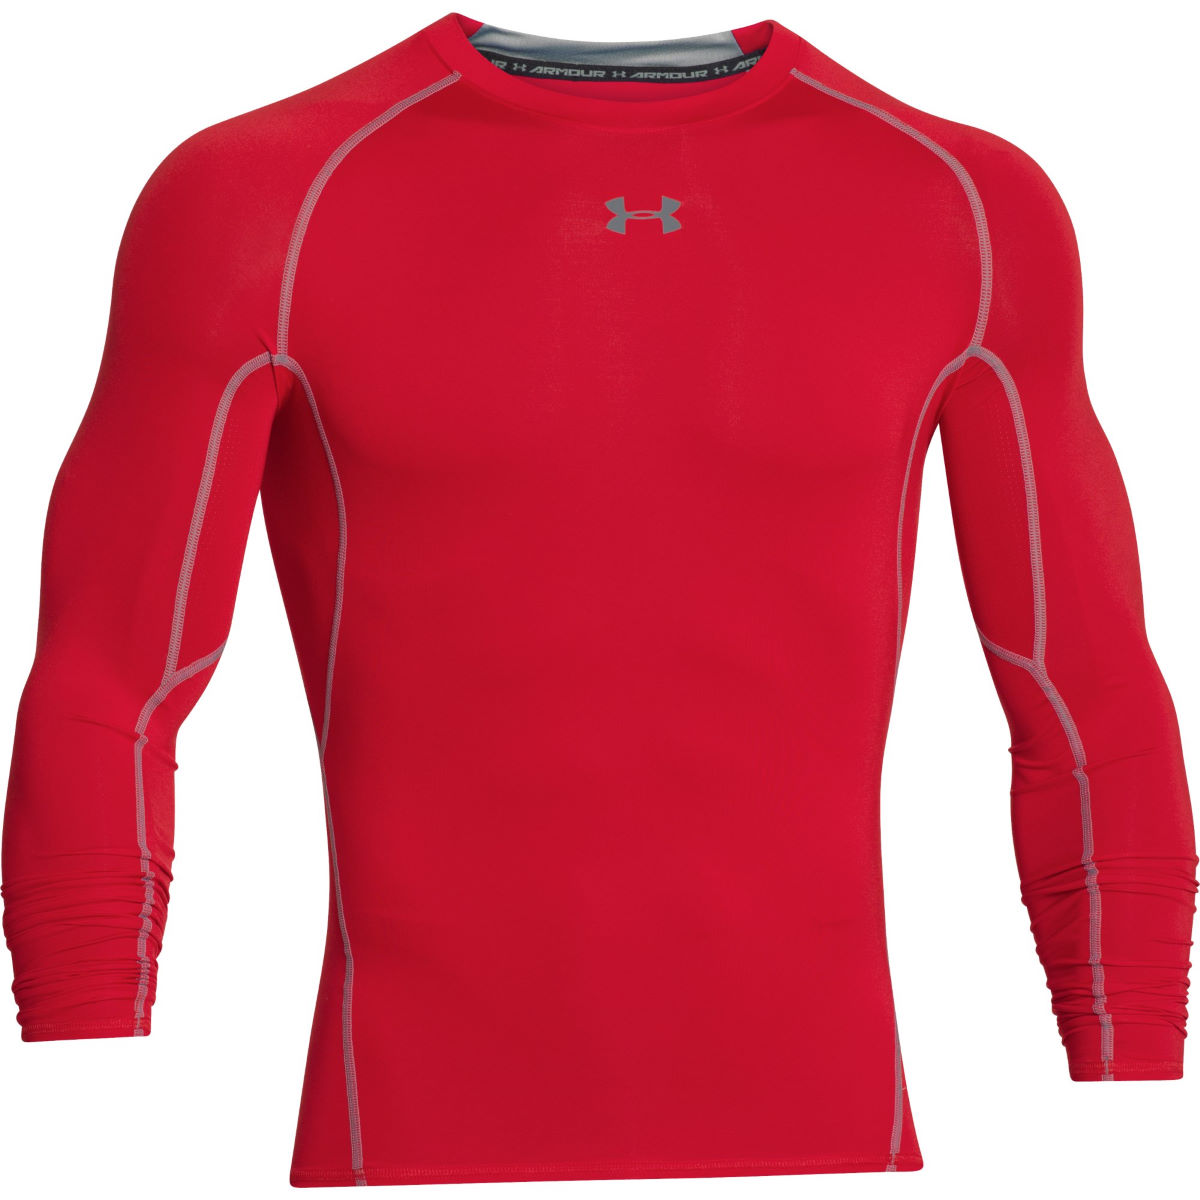 Under Armour Heatgear Armour Long Sleeve Compression Tee   Compression Tops